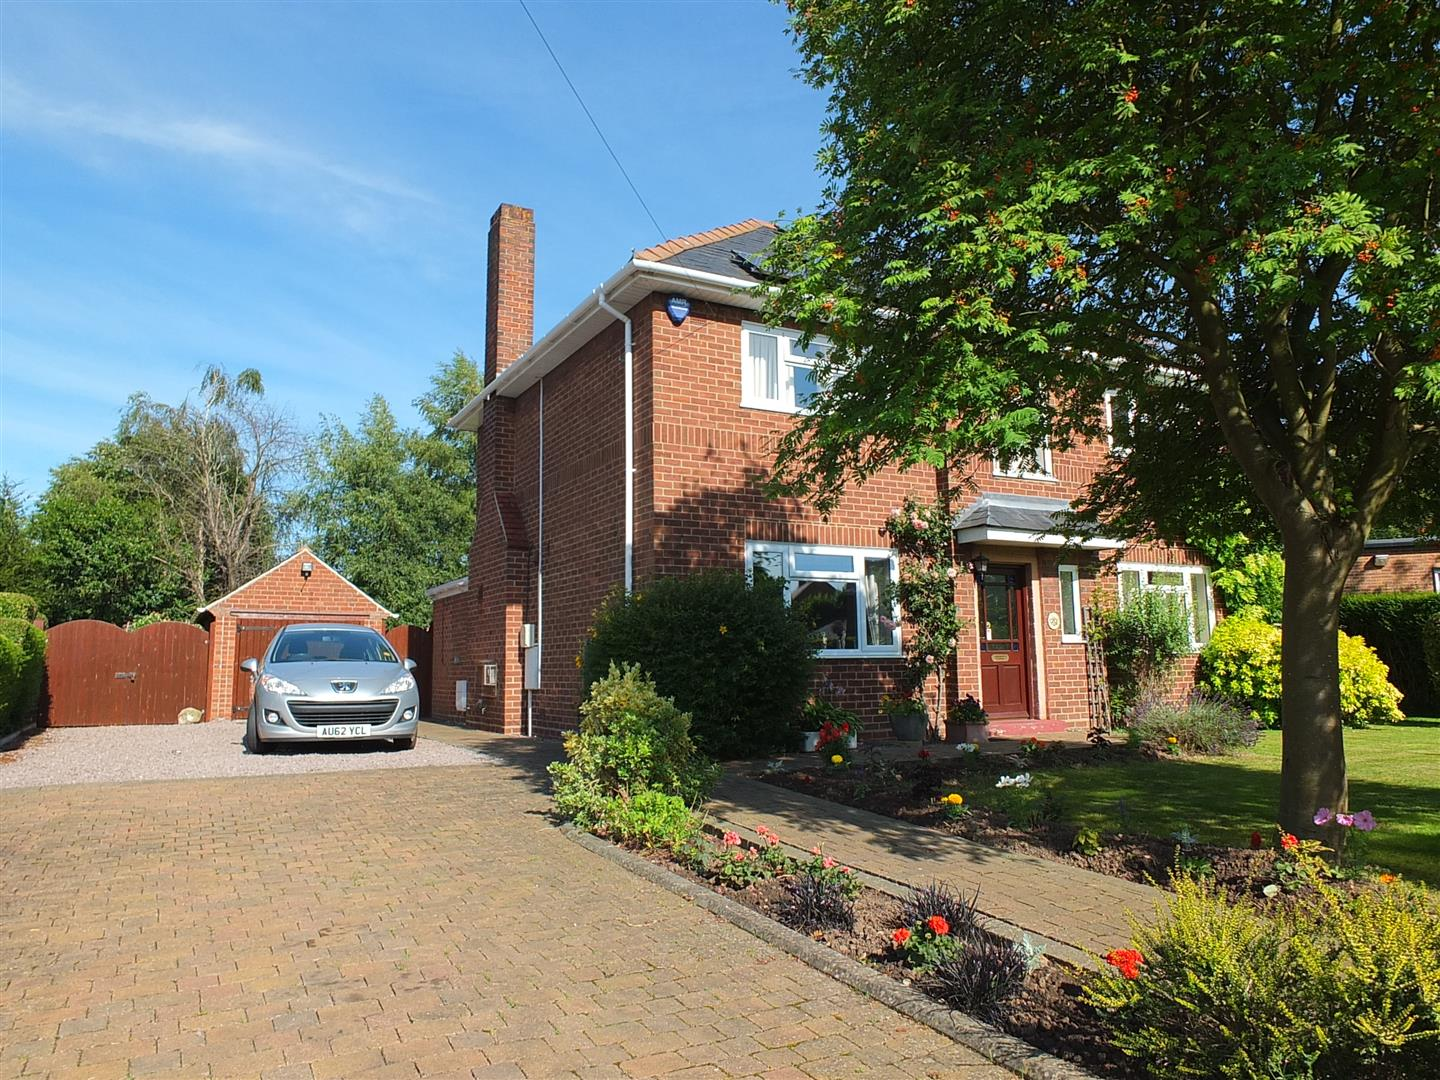 4 bed detached house for sale in Long Sutton Spalding, PE12 9HB  - Property Image 1